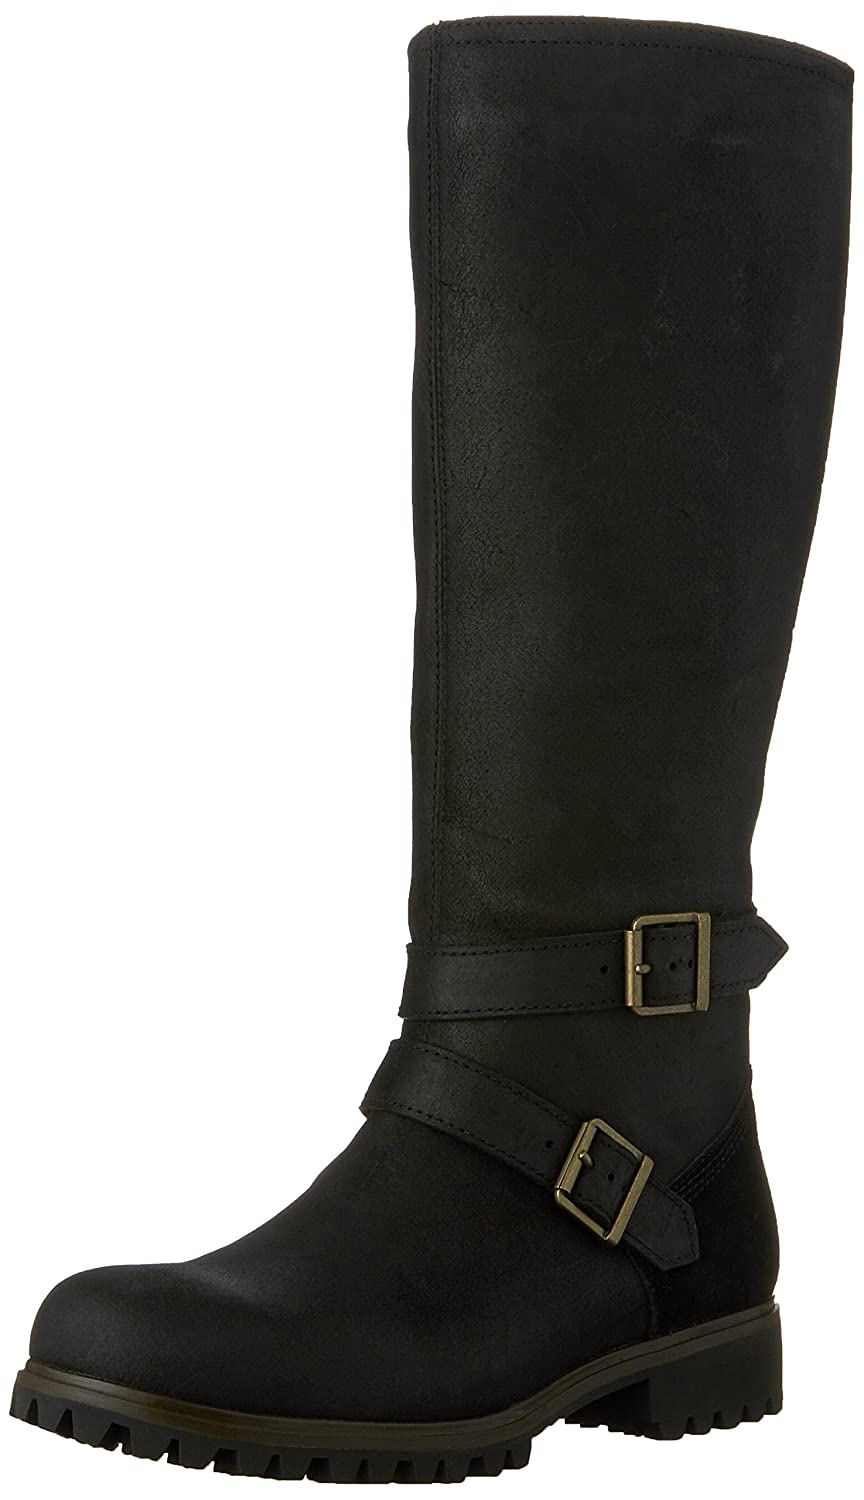 Women's Wheelwright Wide Calf Tall Waterproof Boot